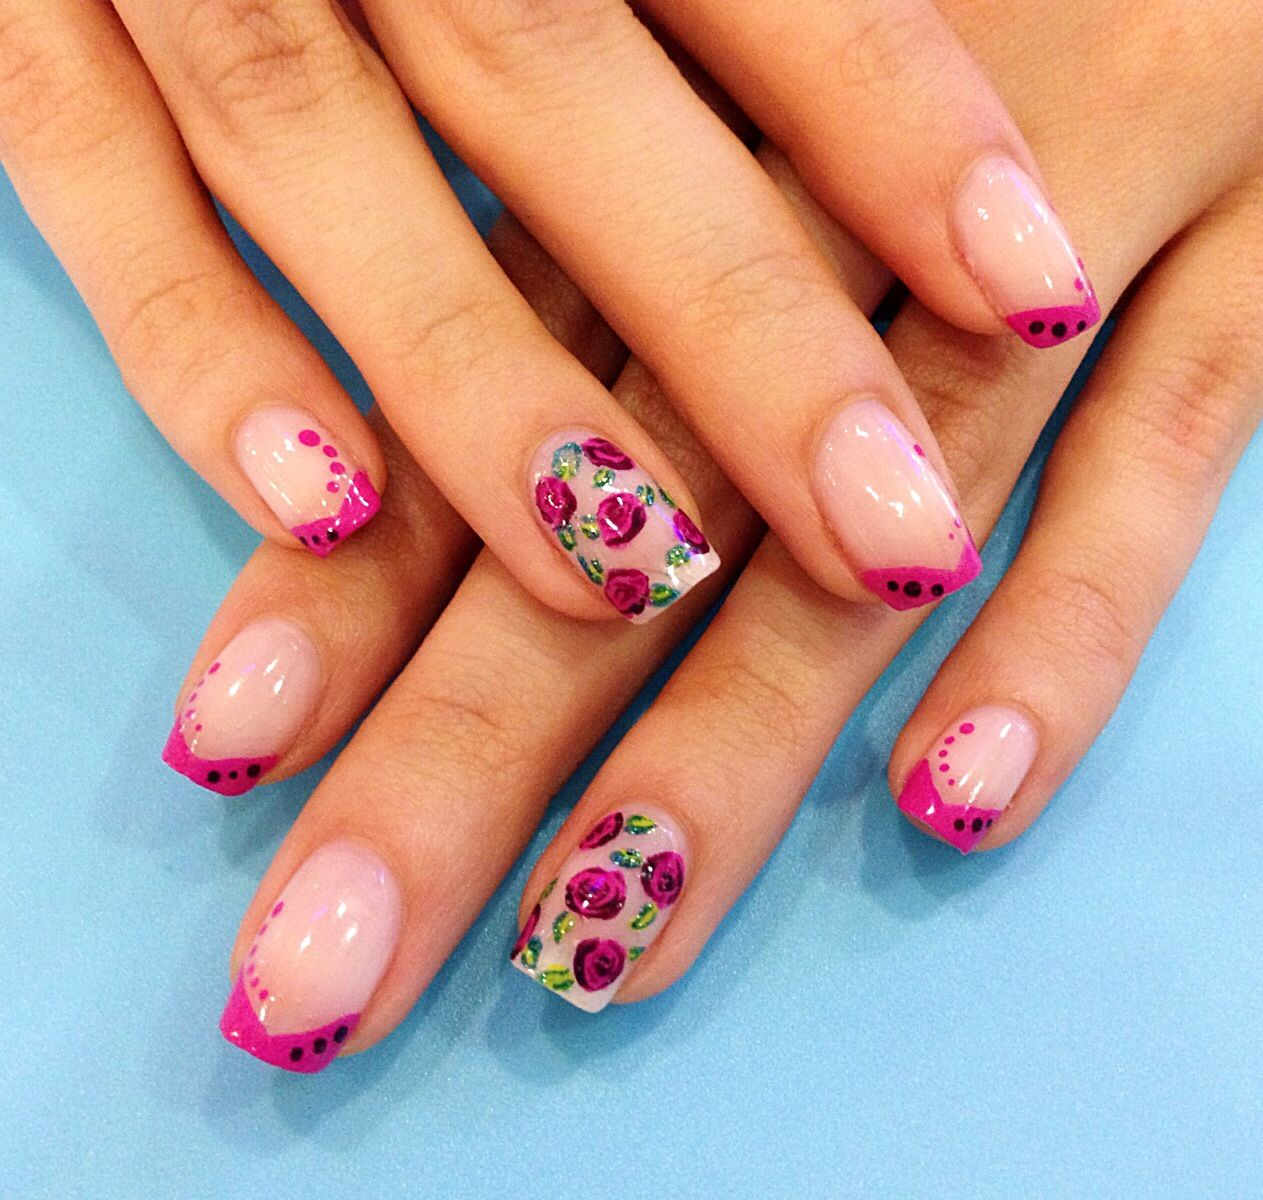 Pink Roses Nail Art, V-shaped French Manicure, Nail Art At